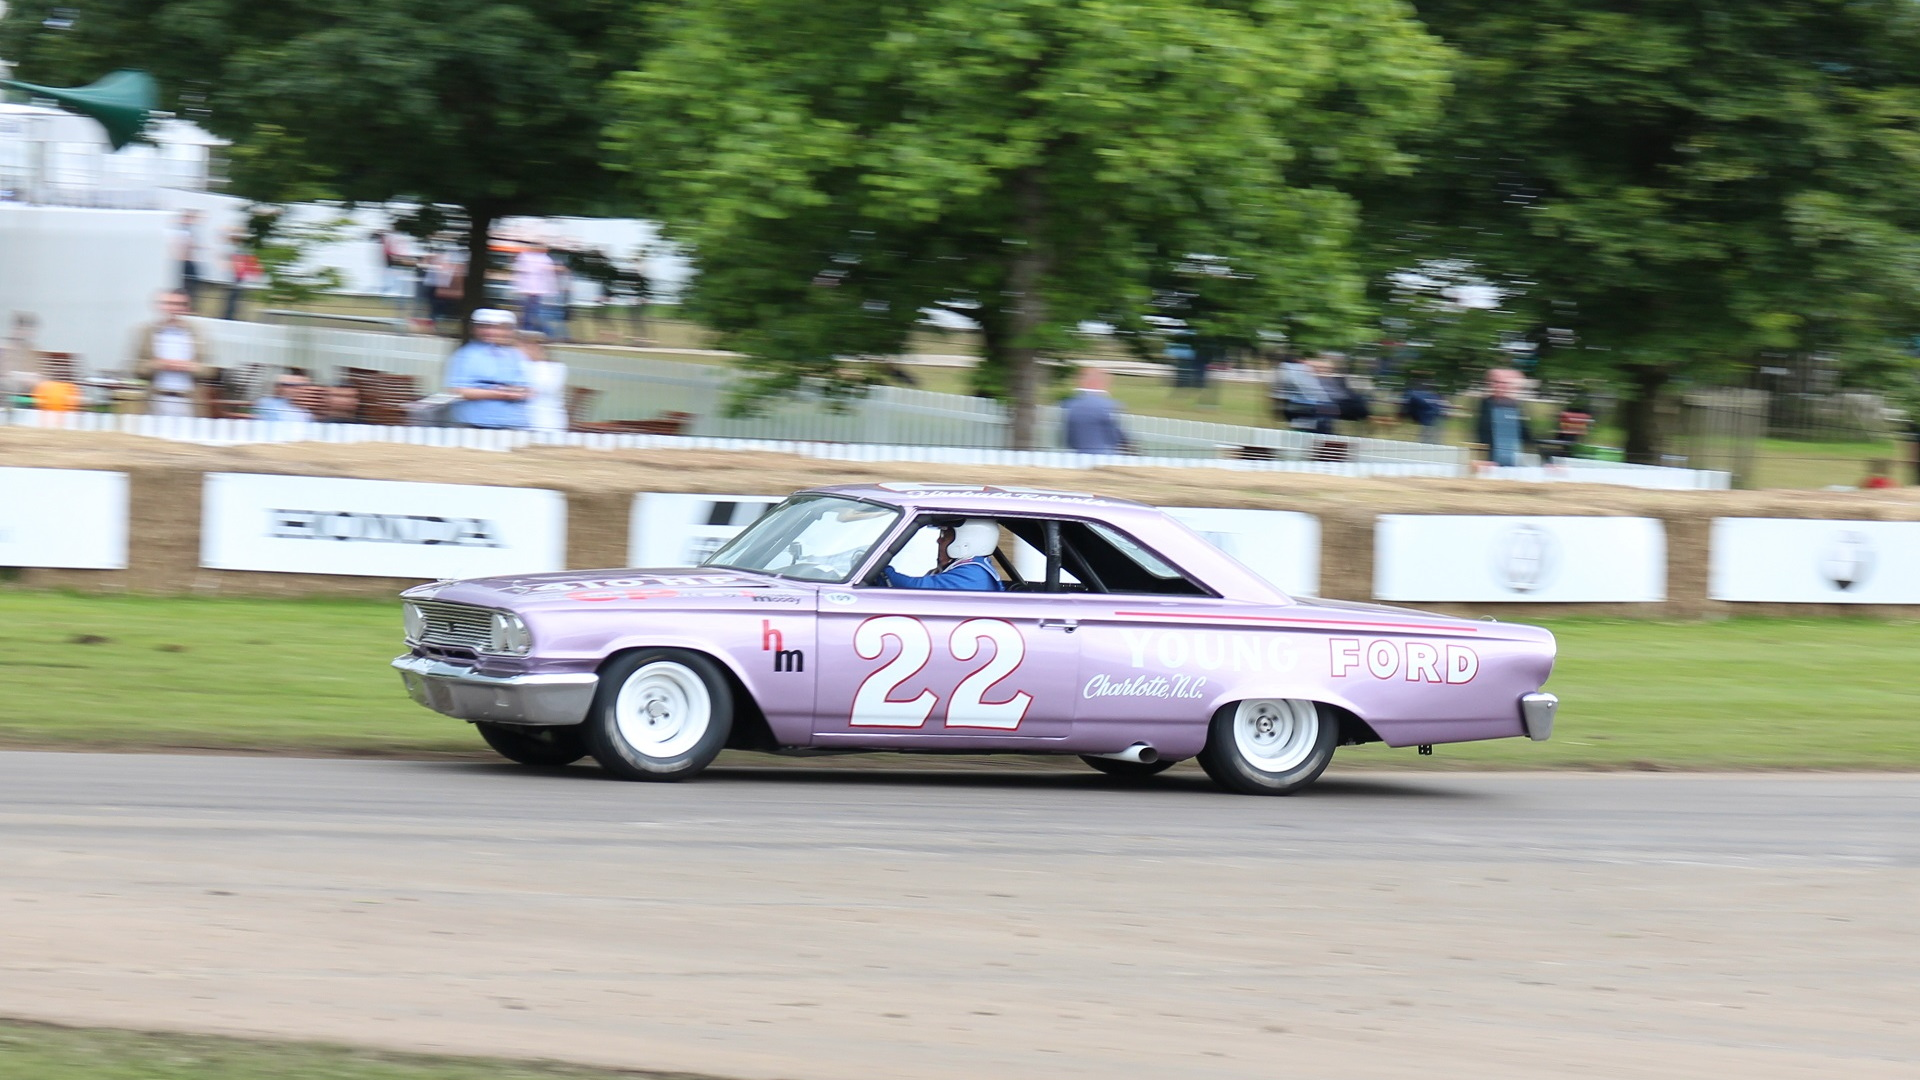 Ford Galaxie NASCAR racer, built by Holman-Moody, at 2016 Goodwood Festival of Speed